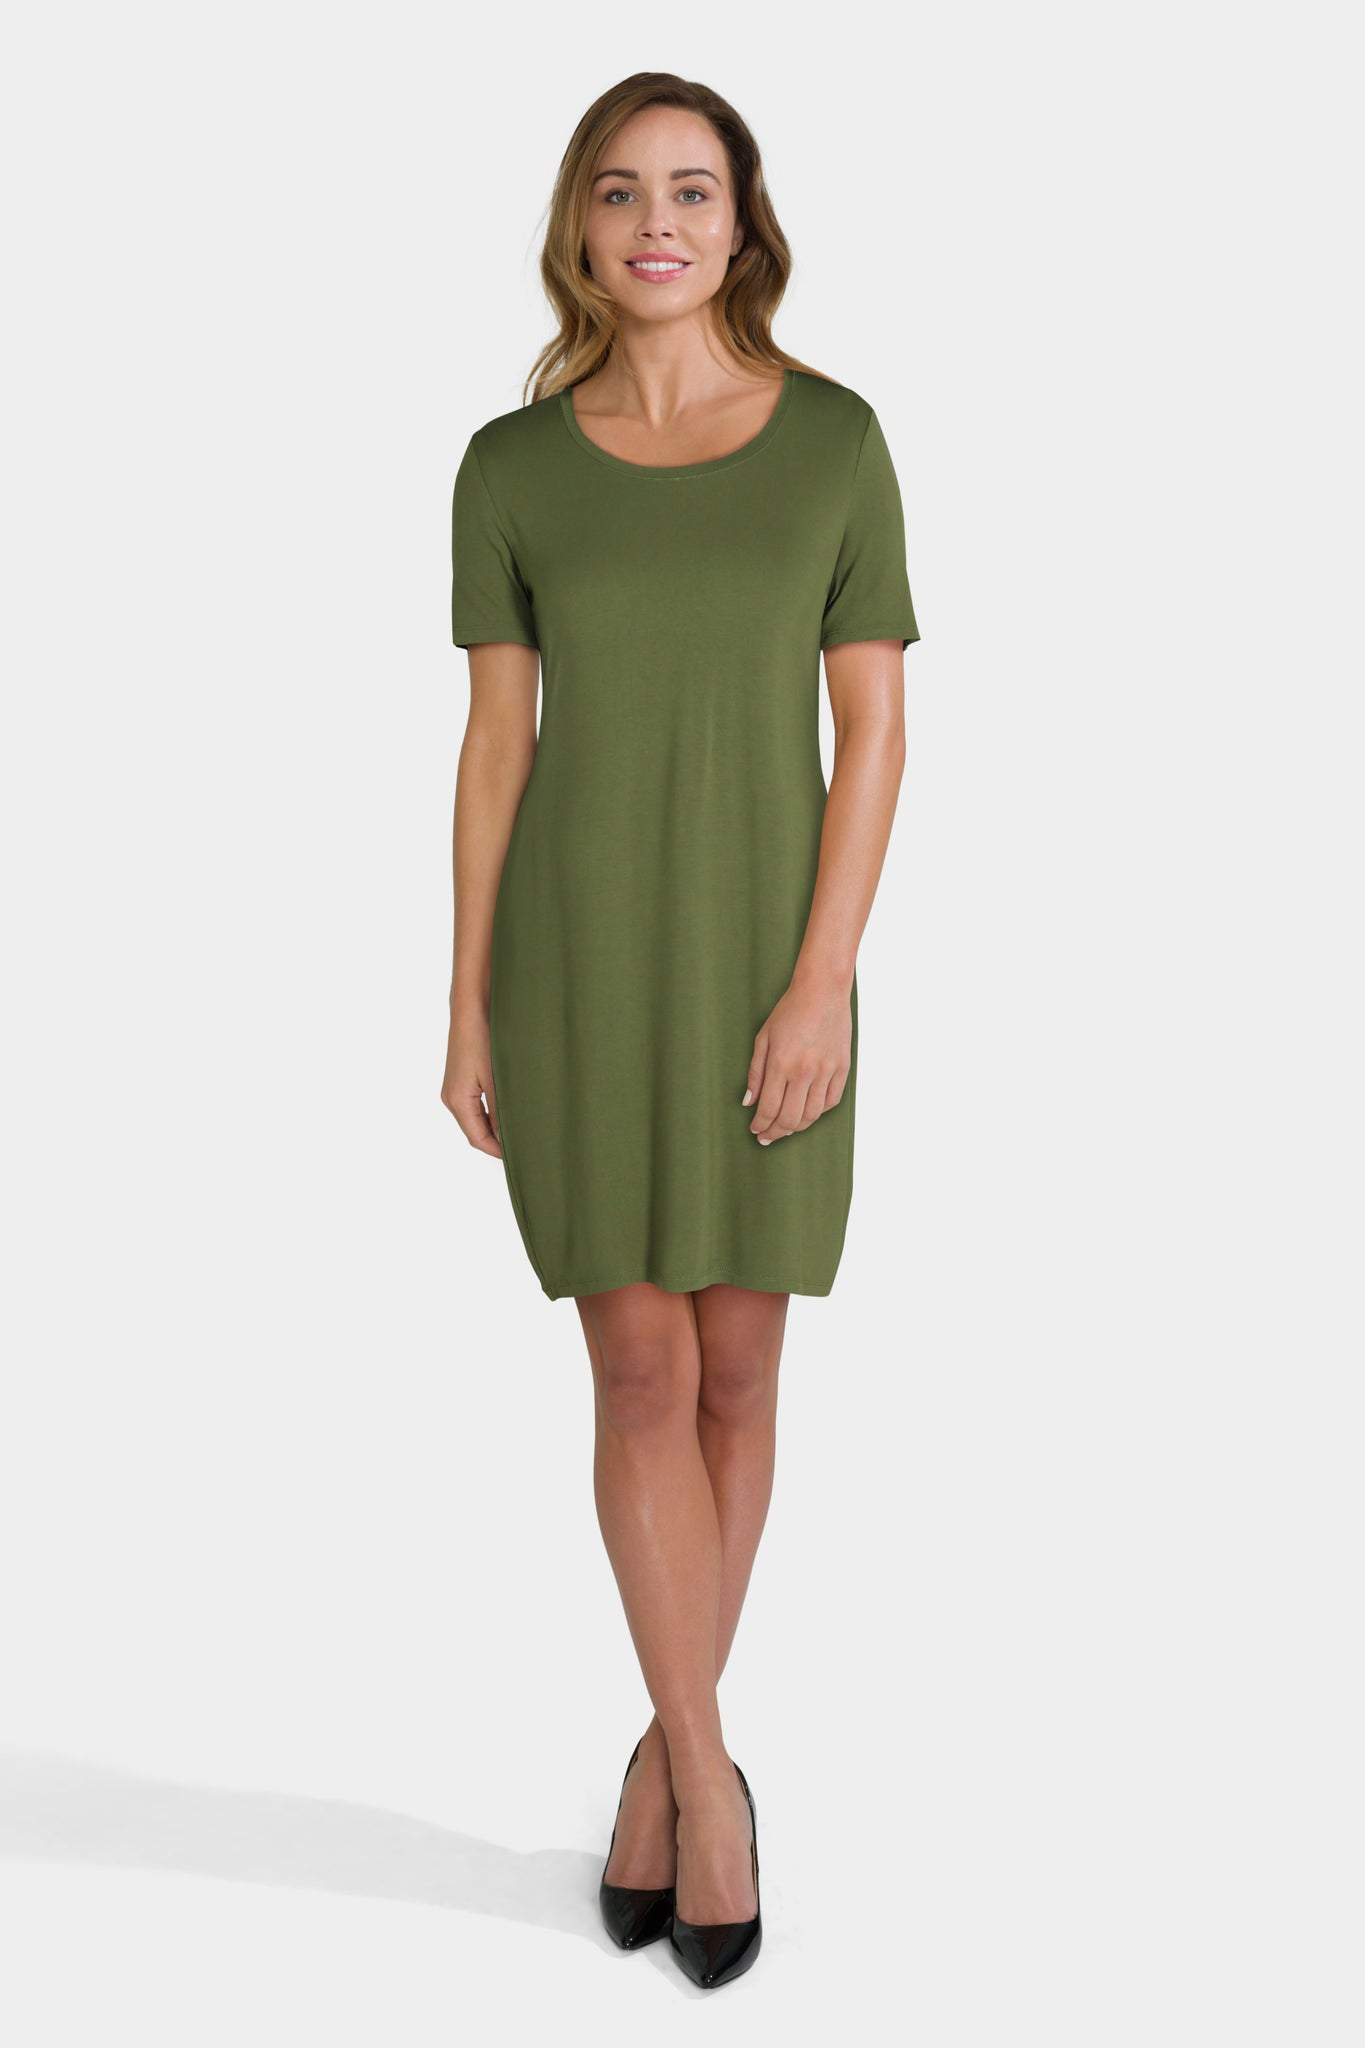 Daily Ritual Women's Jersey Short-Sleeve Scoop Neck T-Shirt Dress